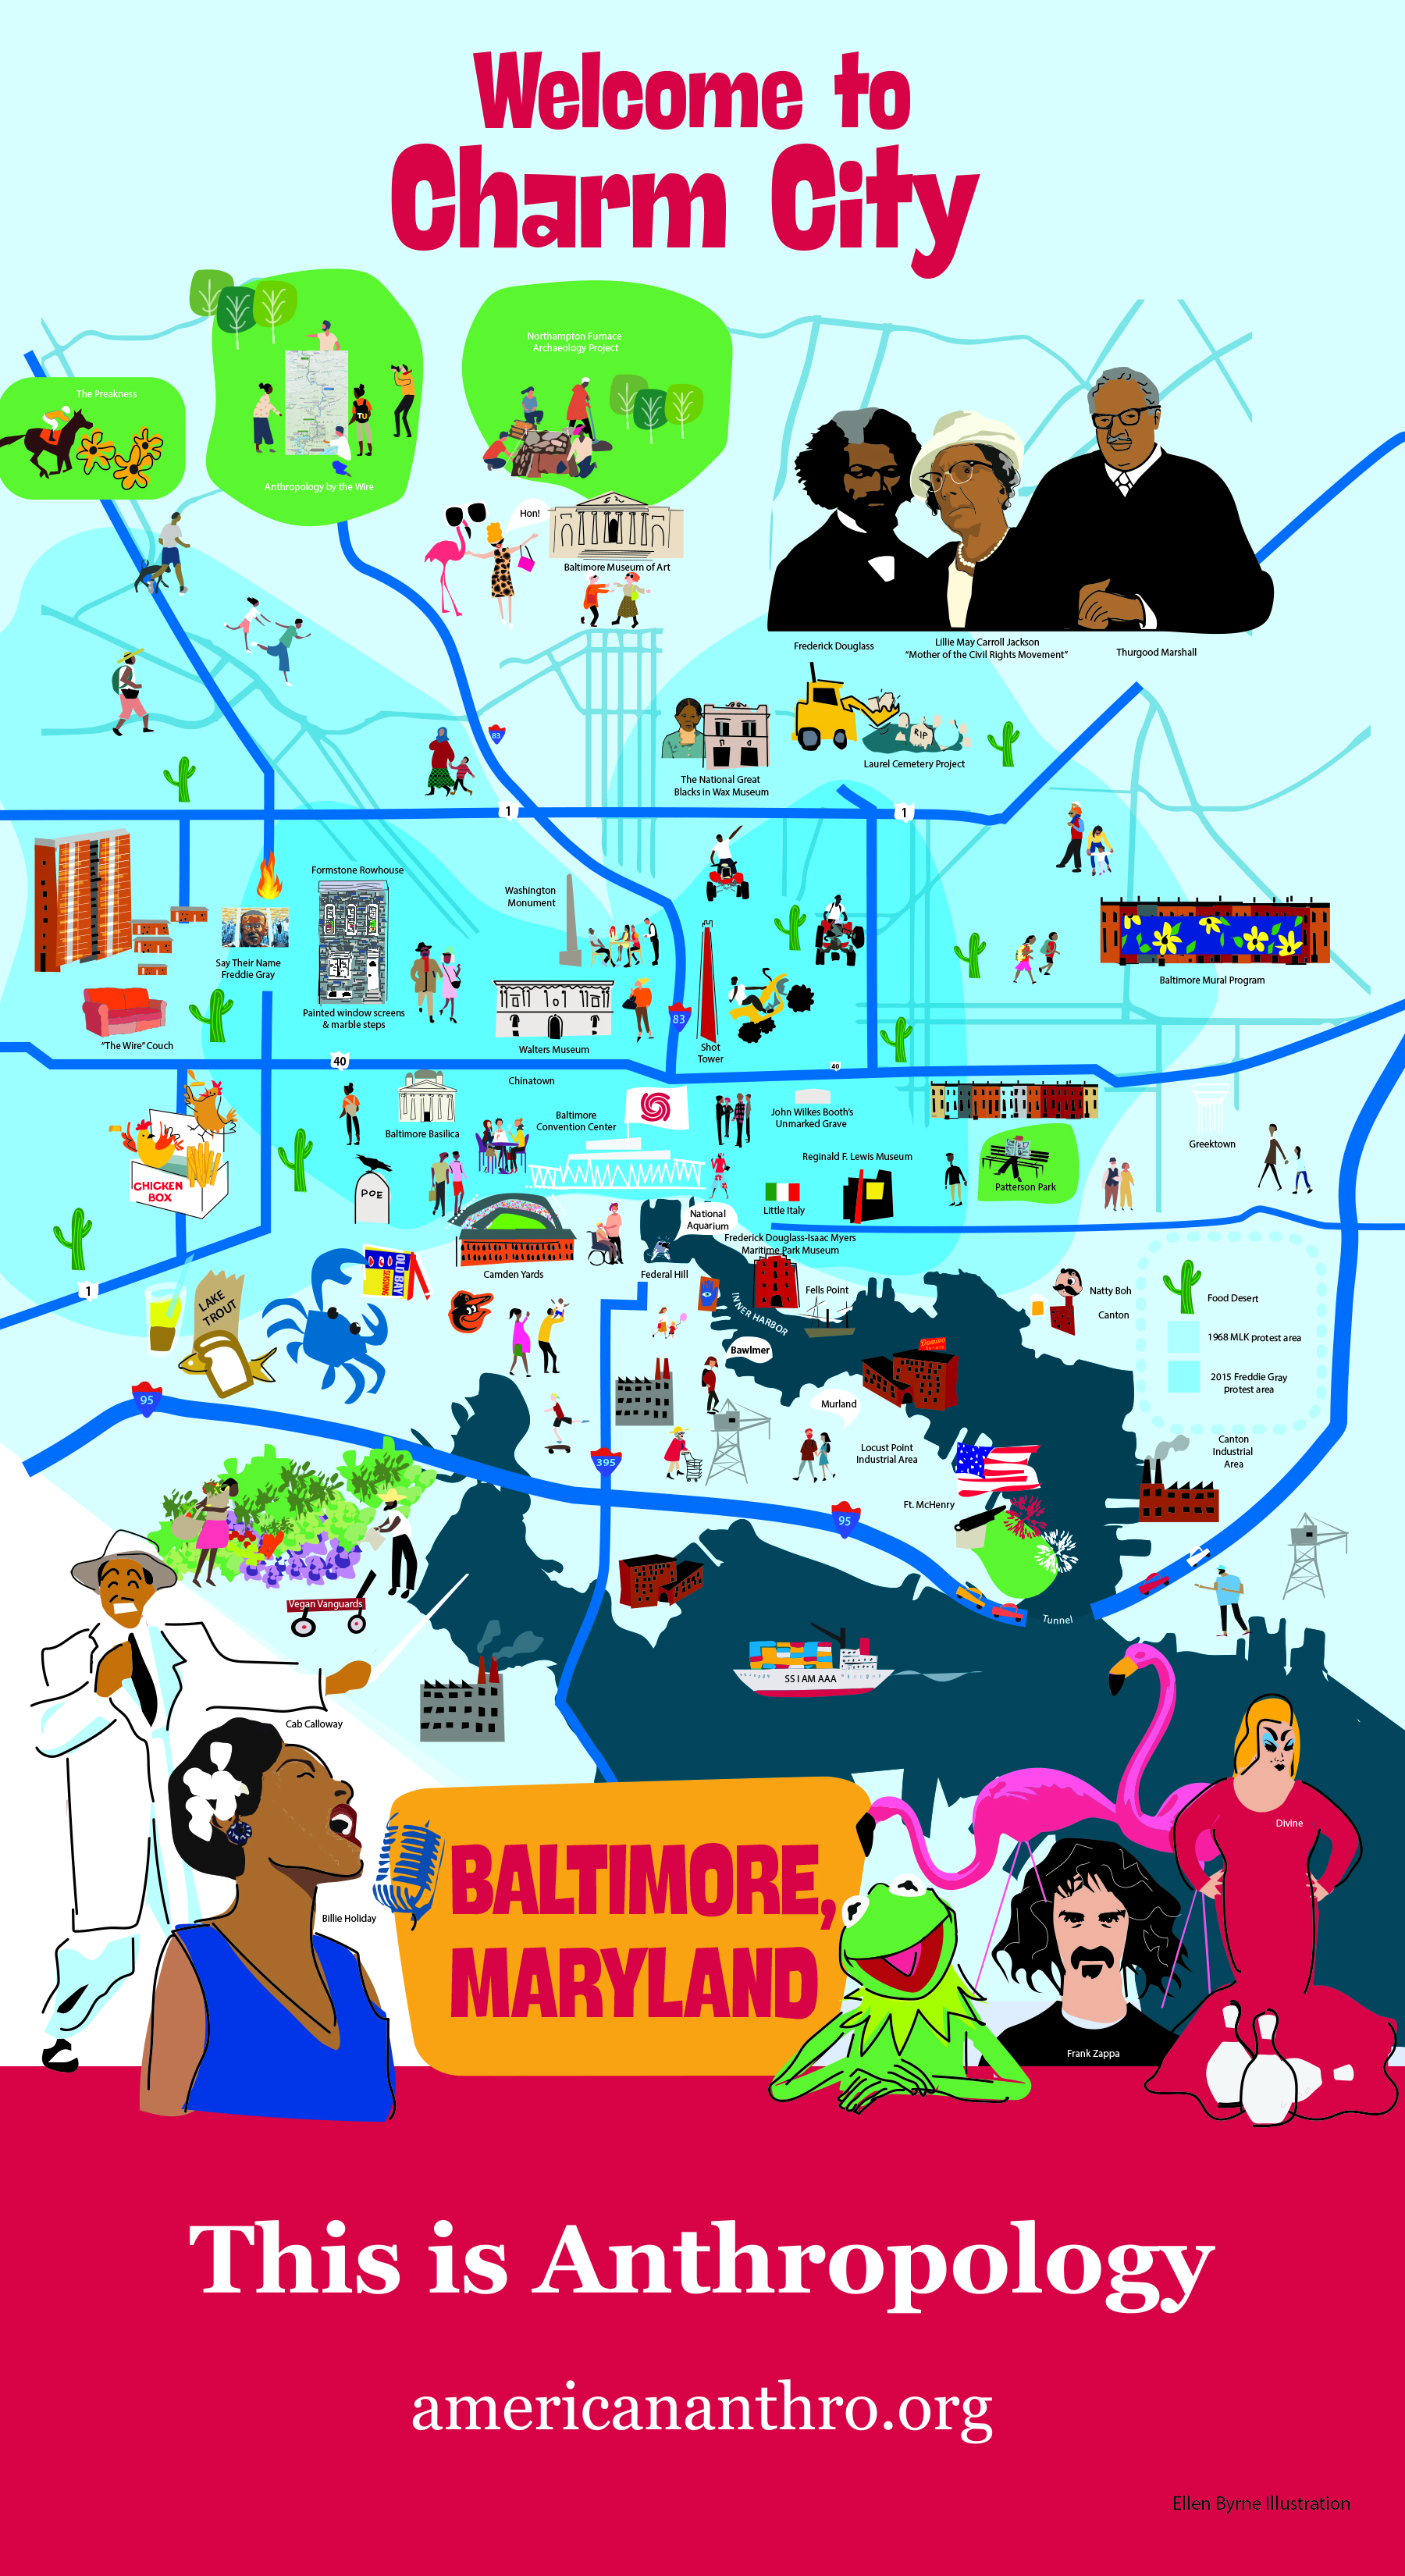 This is Anthropology postcard for the 2021 AAA Annual Meeting in Baltimore, Maryland